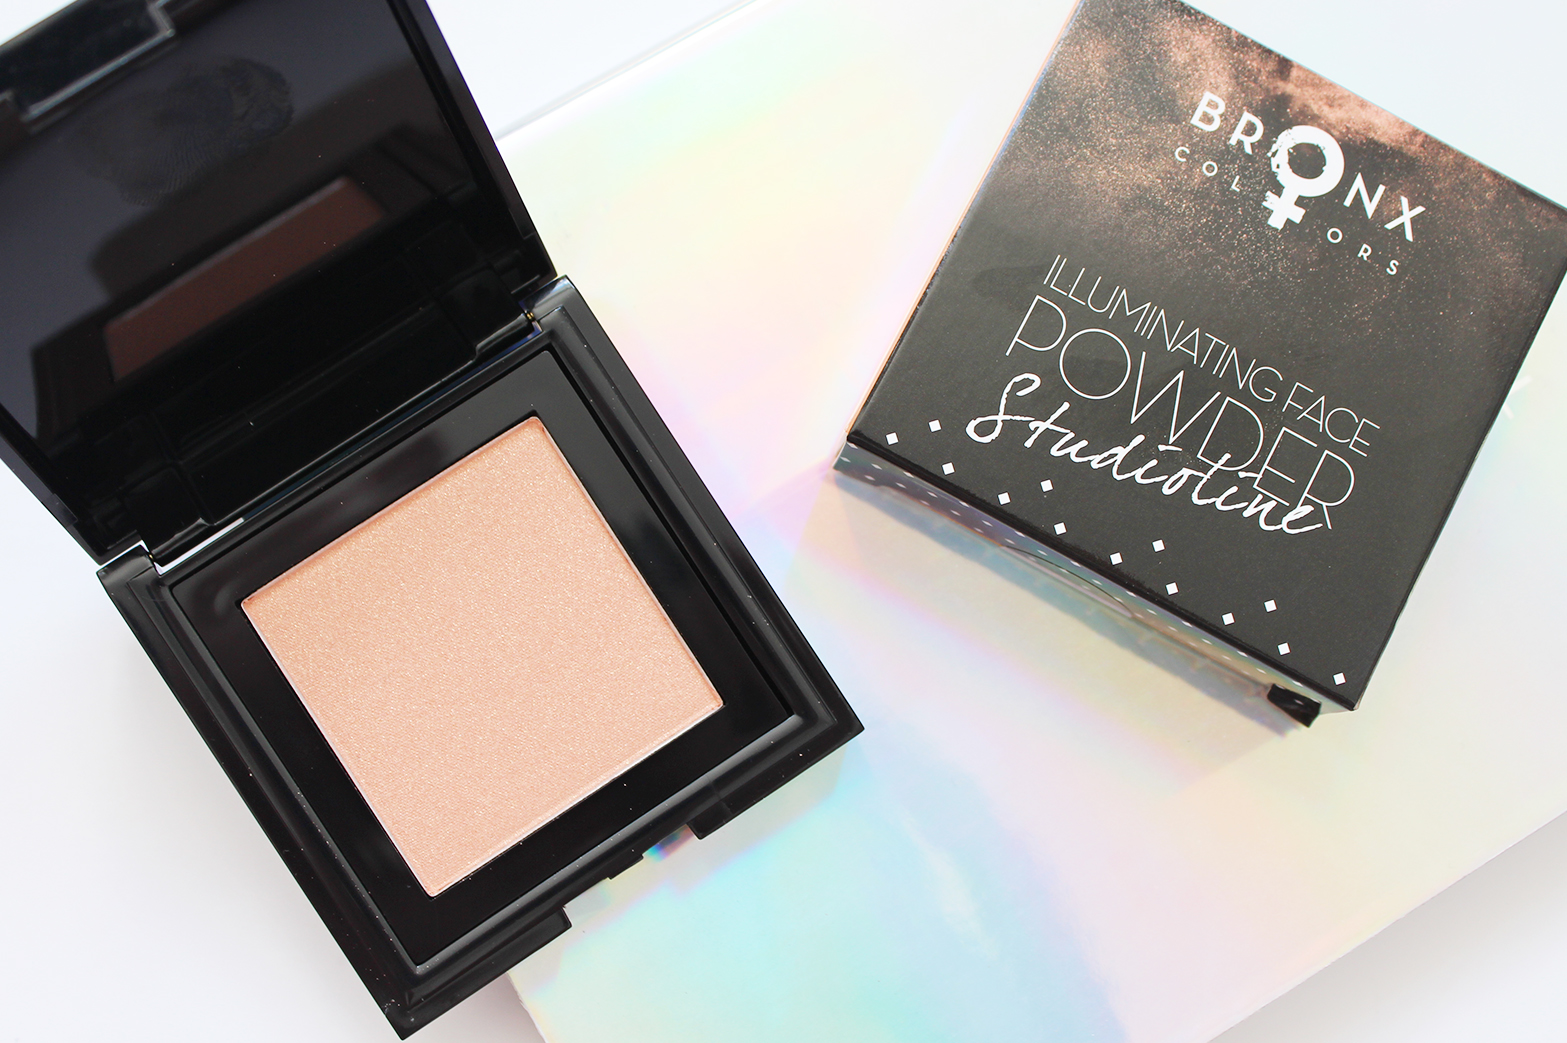 BRONX COLORS | Contouring Kit + Illuminating Face Powder - Review + Swatches - CassandraMyee